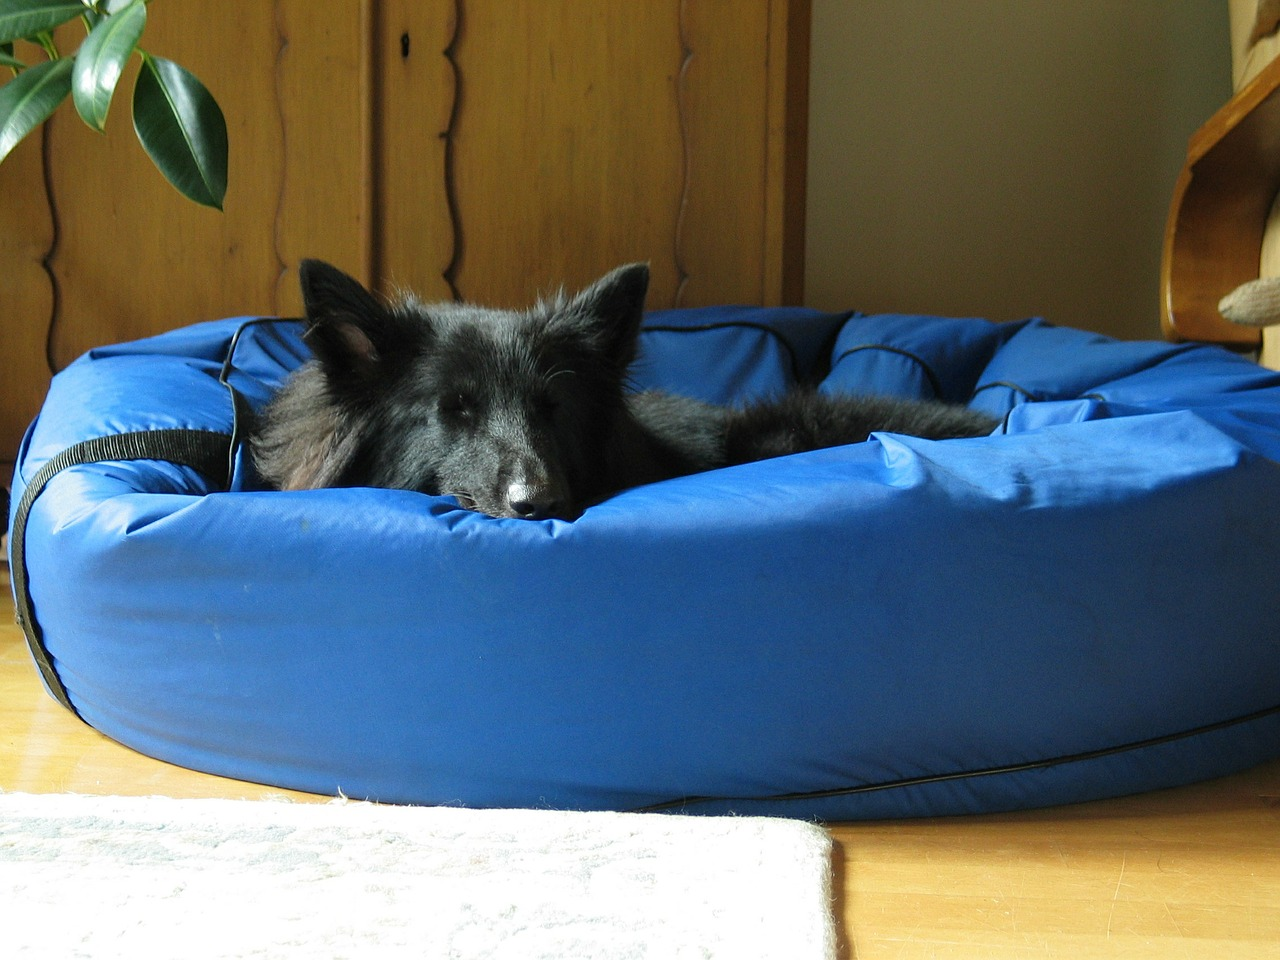 Black dog asleep in a blue dog bed that resembles a bean bag chair